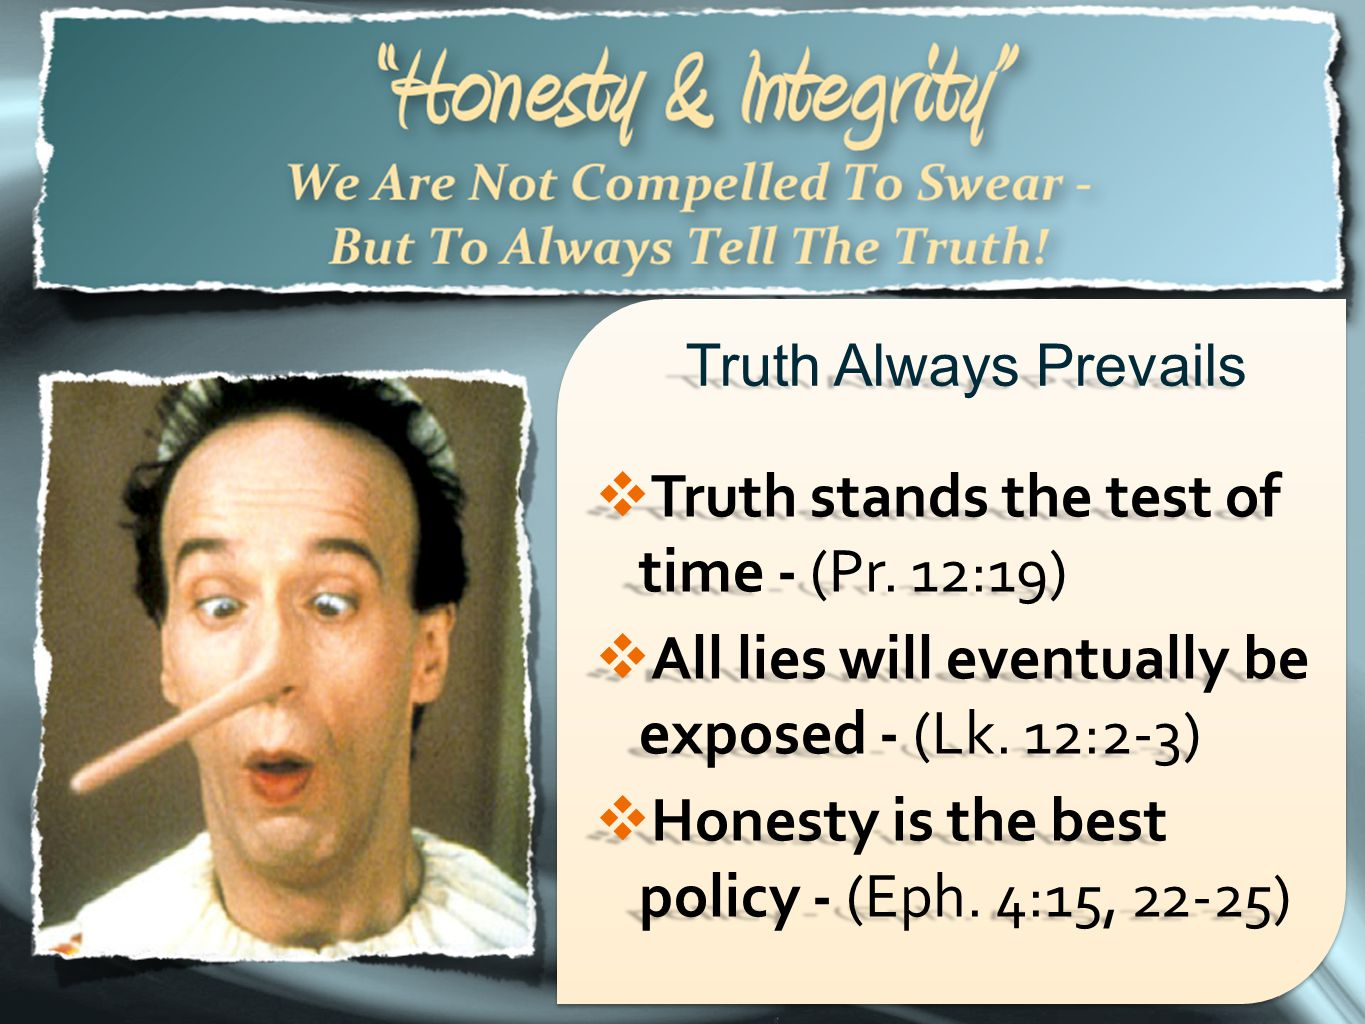 Truth stands the test of time - (Pr. 12:19)